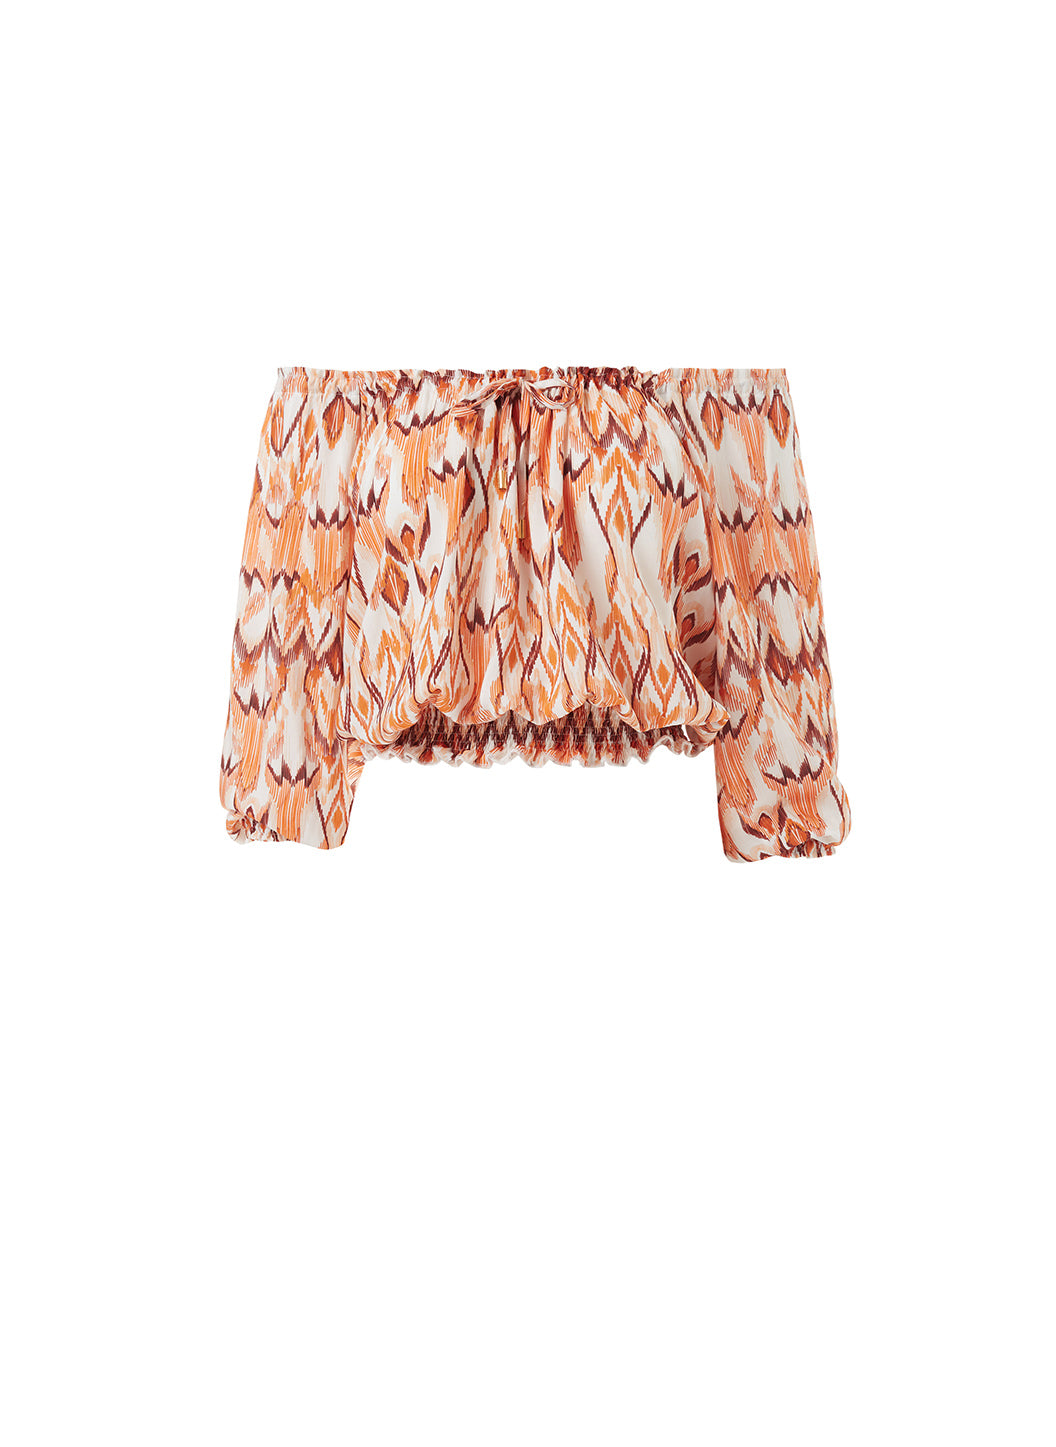 Anne Ikat Off The Shoulder Top - Melissa Odabash Tops & Bottoms